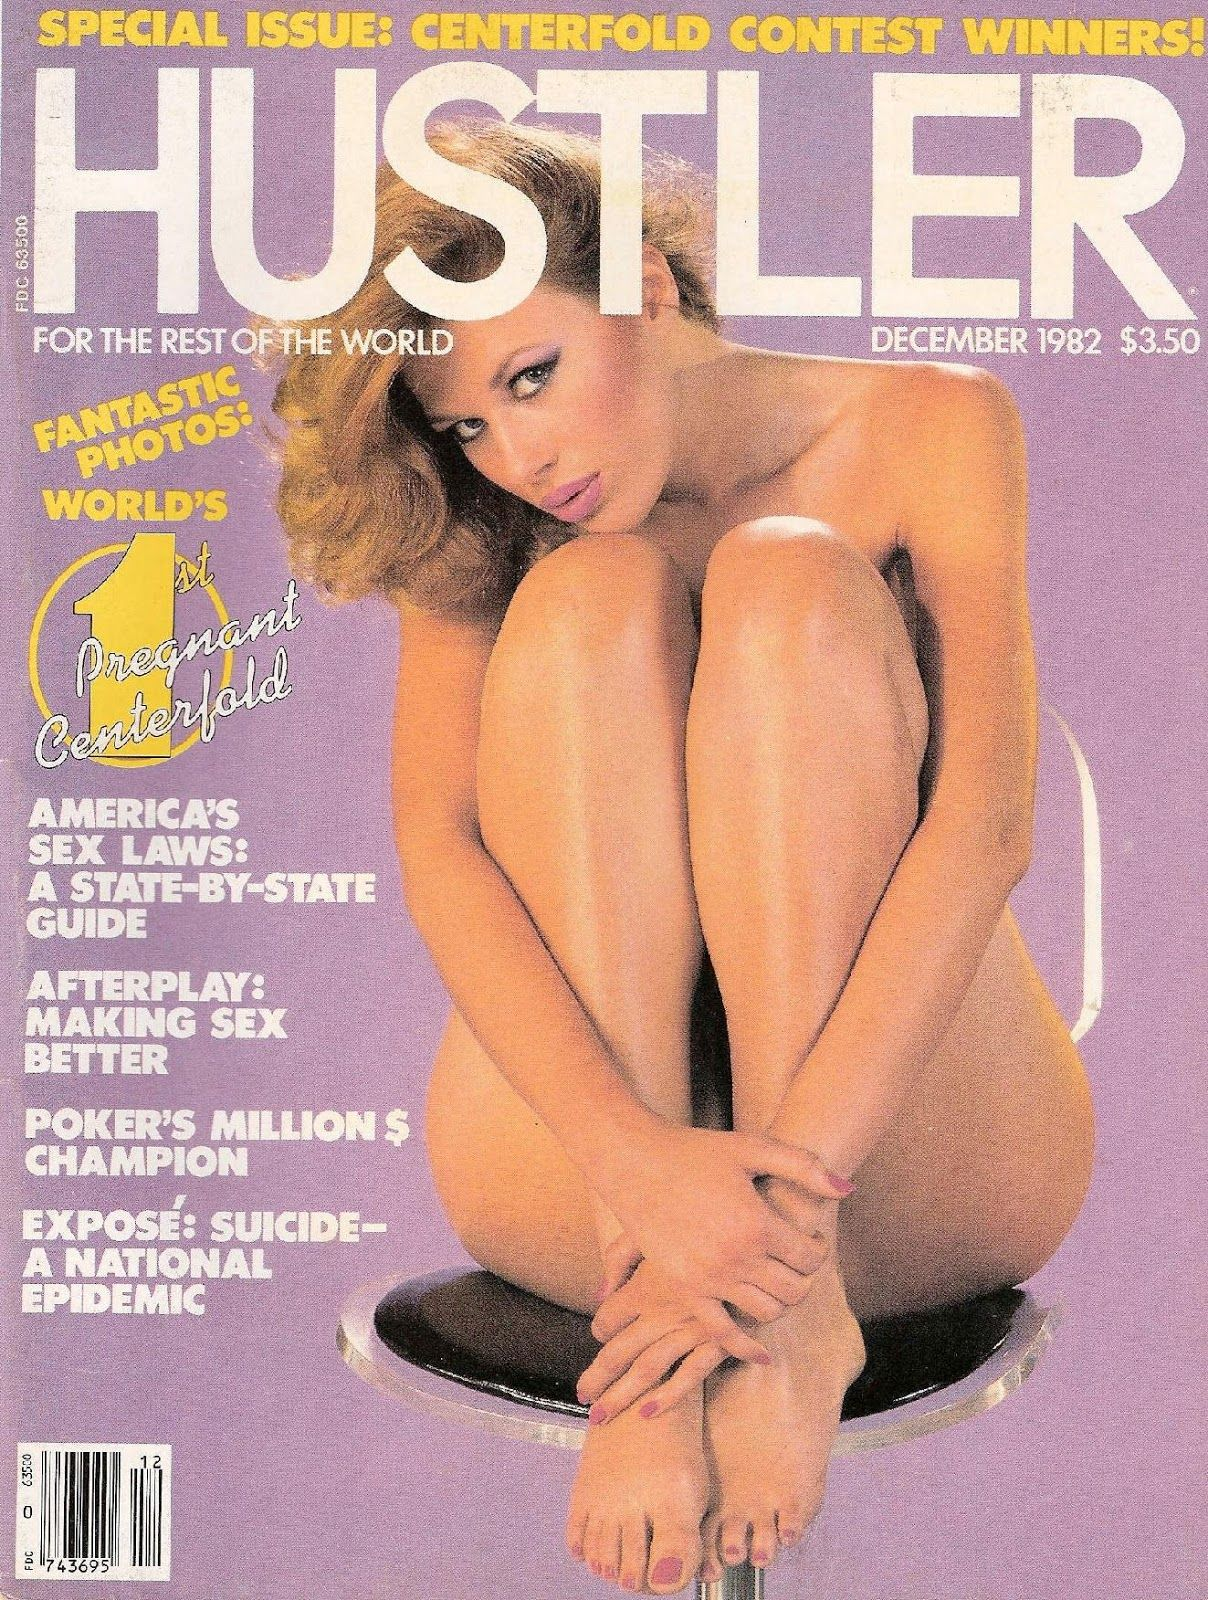 Jackie O Hustler Pics Ele hustler is one of the world's leading men's magazine featuring the